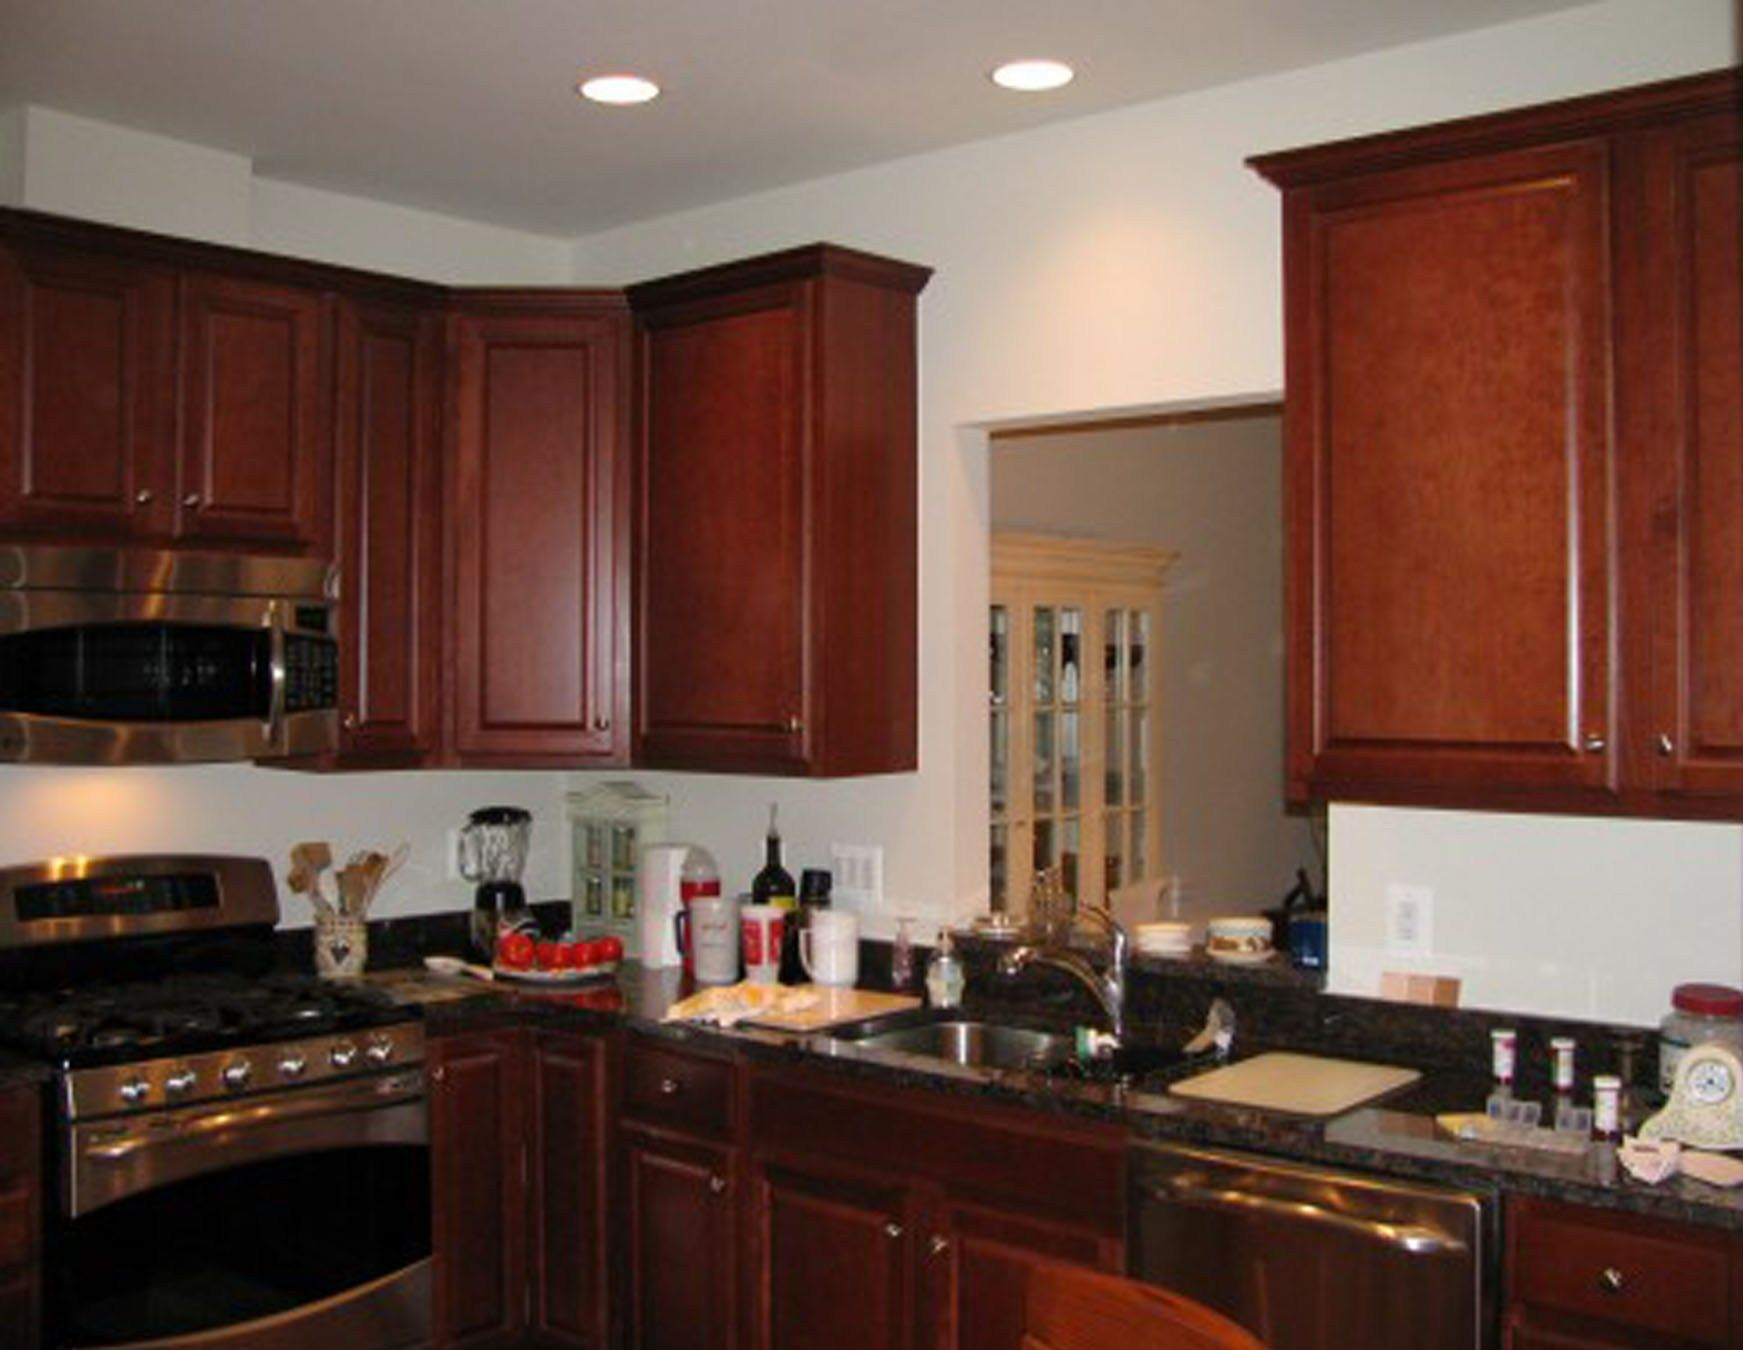 wallpaper popular kitchen colors with cherry cabinets of pc full hd pics dark brown cabinets wainscoting